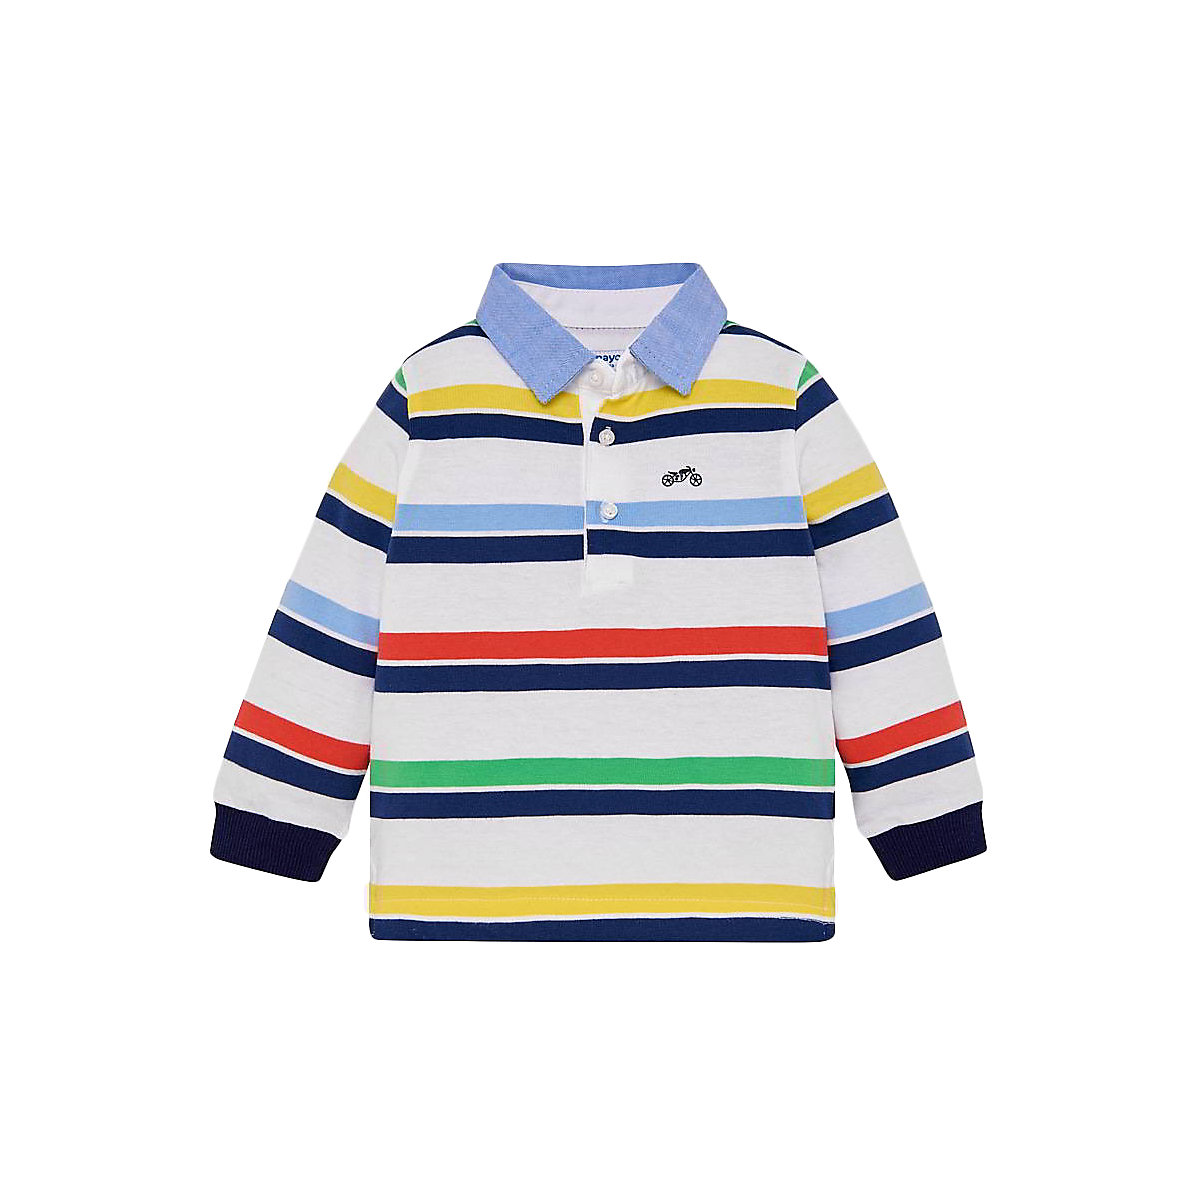 Фото - MAYORAL Polo Shirts 10689650 children clothing t-shirt shirt the print for boys t shirts modis m182m00016 shirt cotton polo for for male for man tmallfs